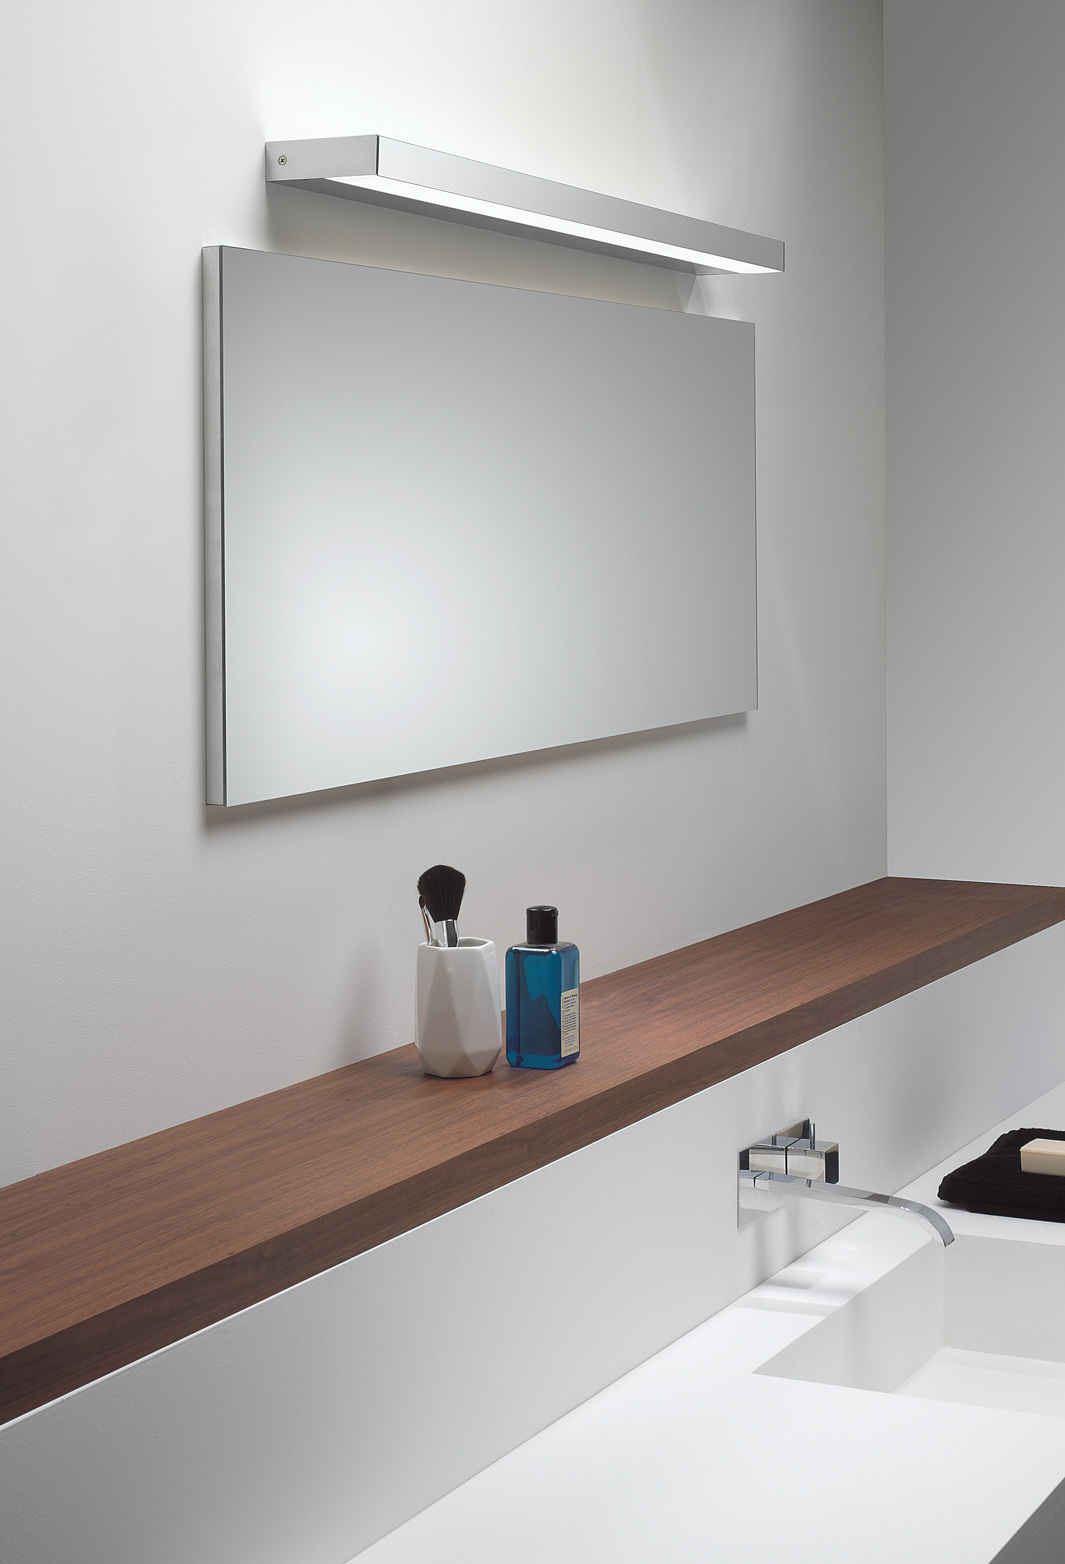 Astro axios led ip44 bathroom wall light mirror light up for Bathroom mirror with lights